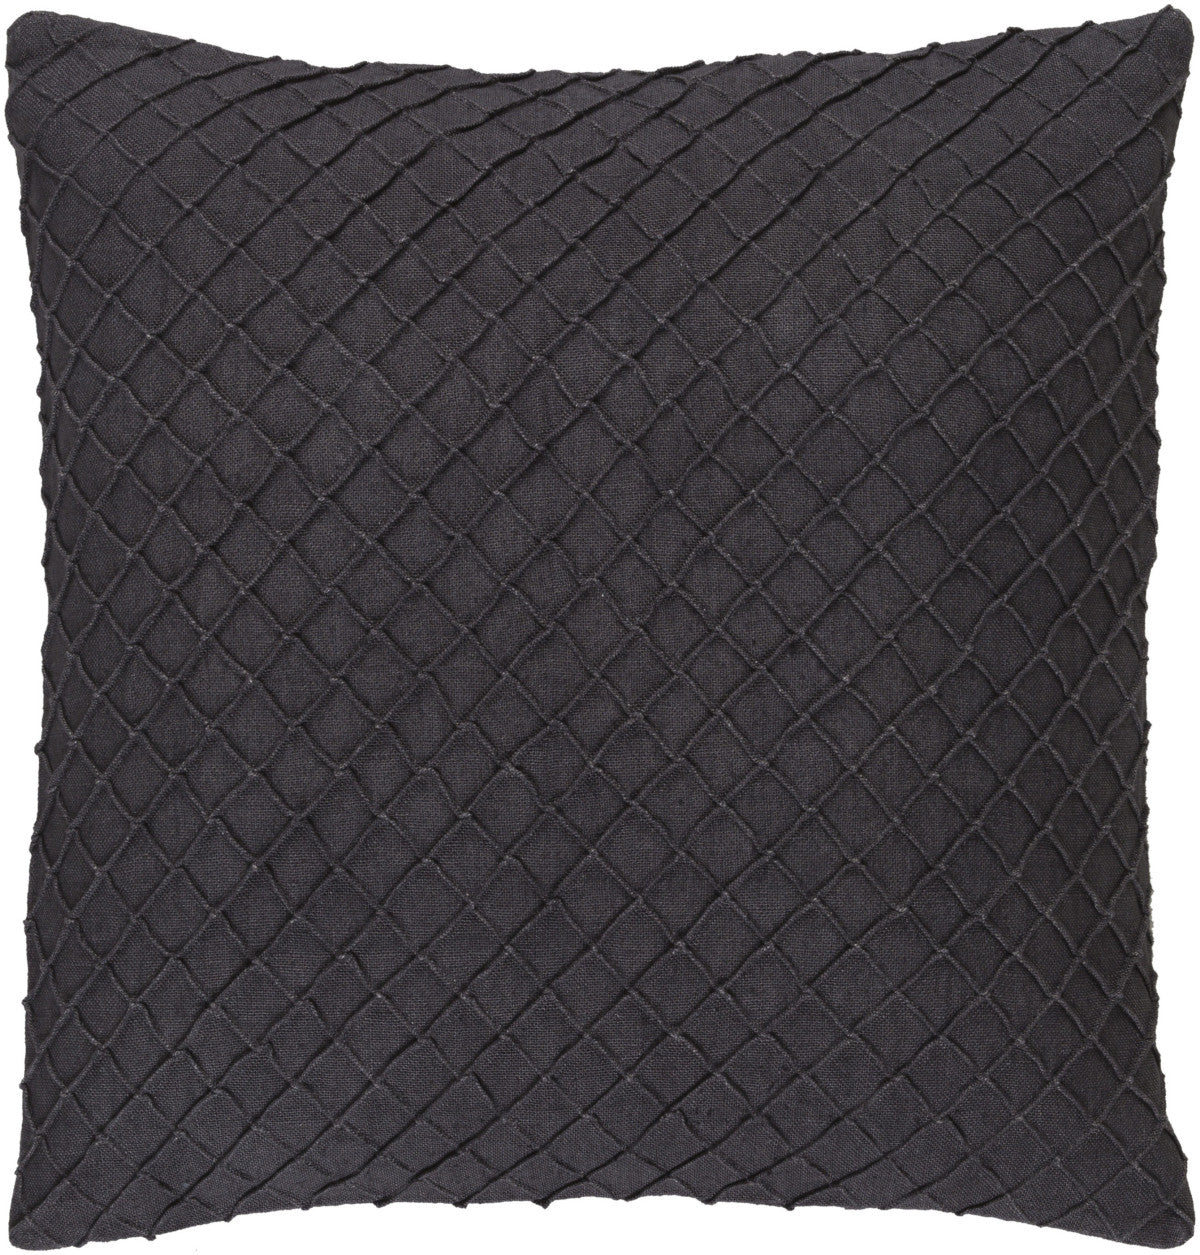 Surya Wright WR005 Pillow